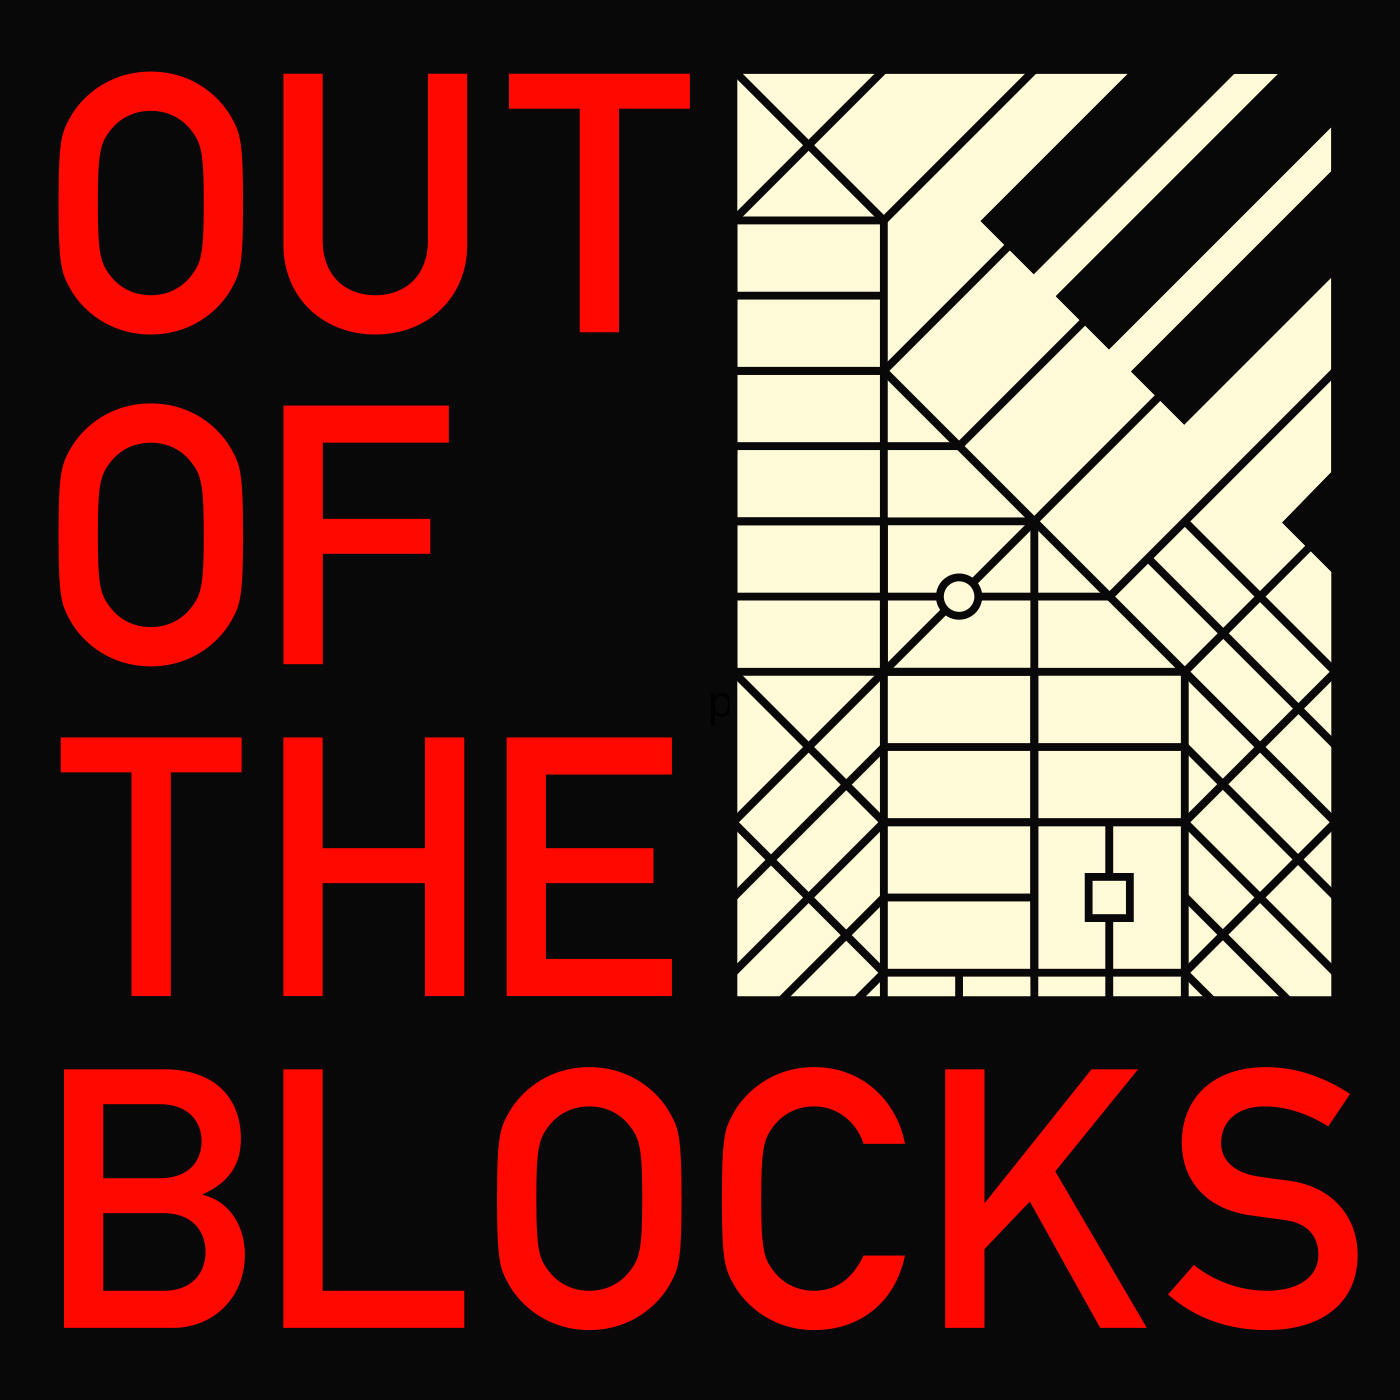 Out of the Blocks